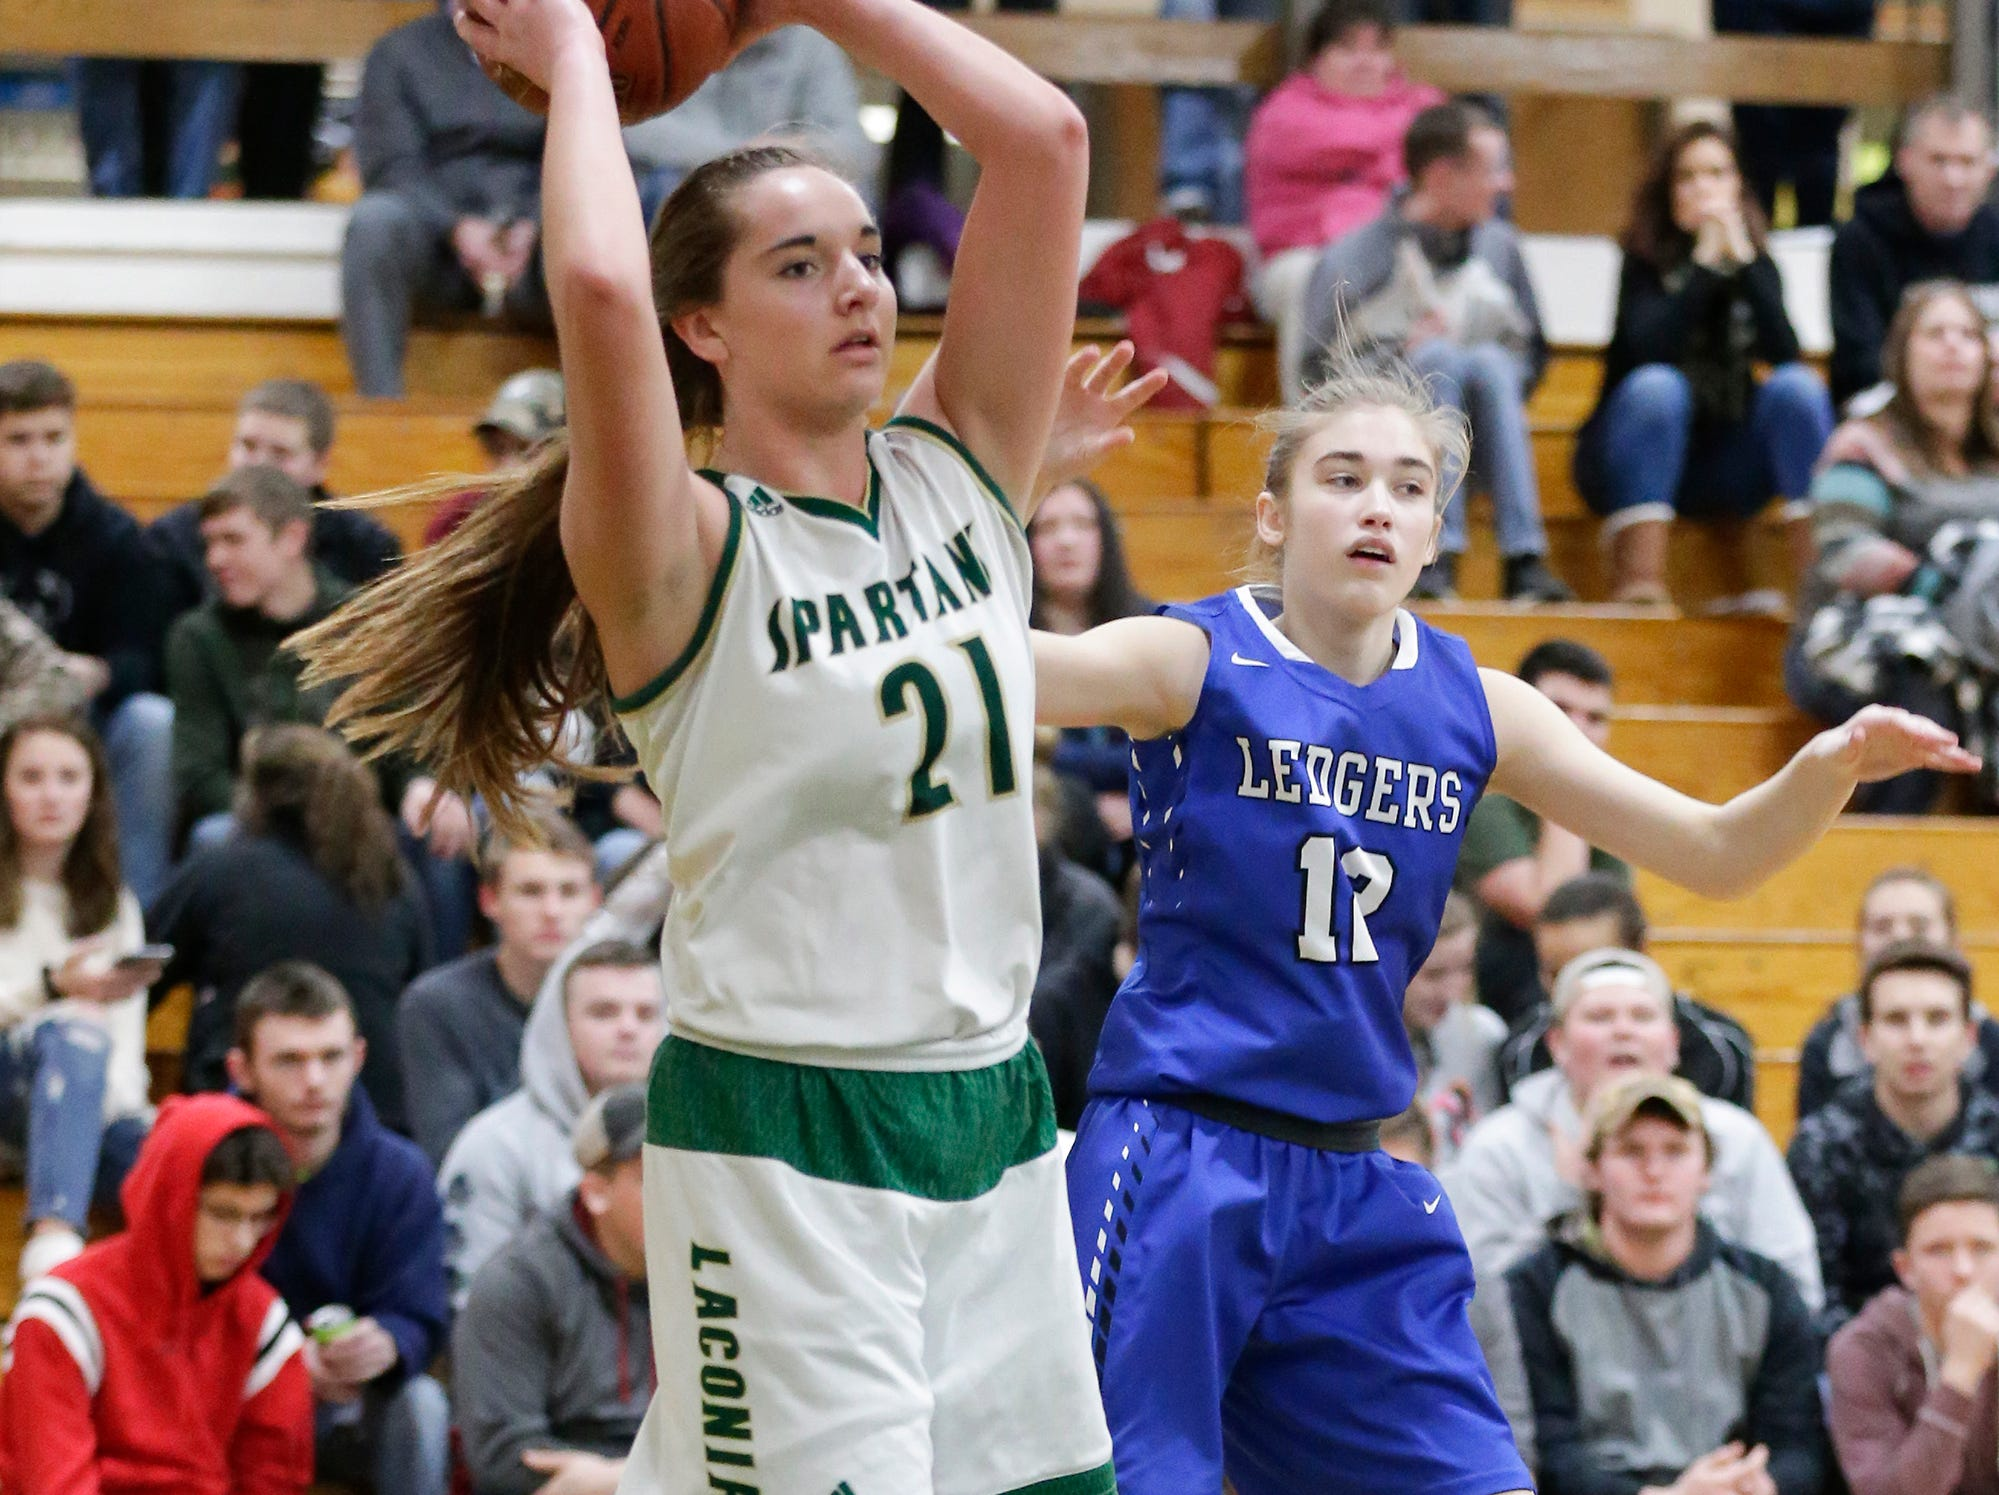 Laconia High School girls basketball's Alissa Dins looks to pass the ball against St. Mary's Springs Academy Tuesday, January 15, 2019 during their game in Rosendale. Laconia won the game 57-45. Doug Raflik/USA TODAY NETWORK-Wisconsin